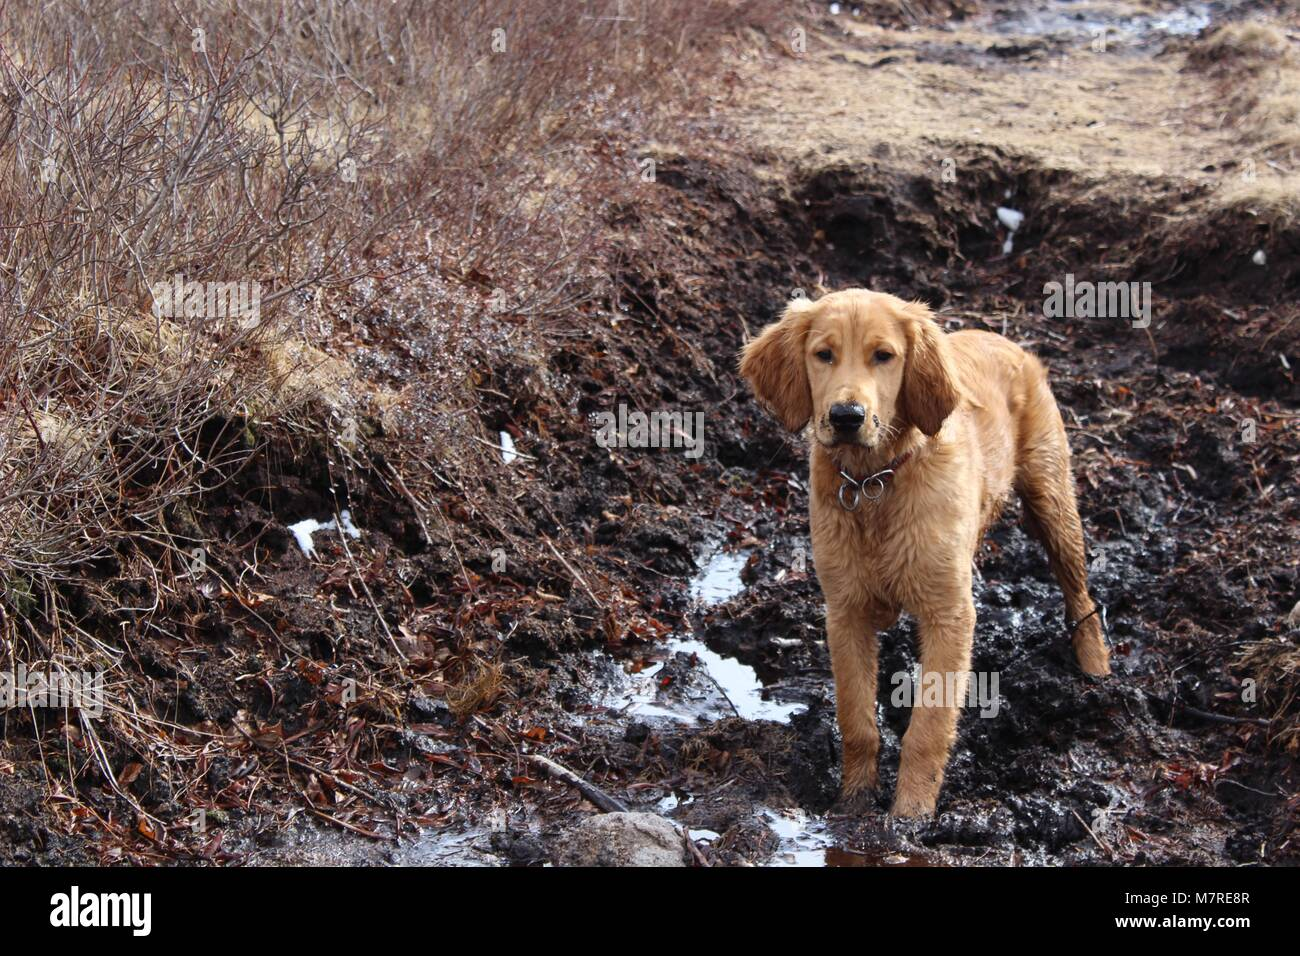 dirty irish golden puppy in the mud - Stock Image